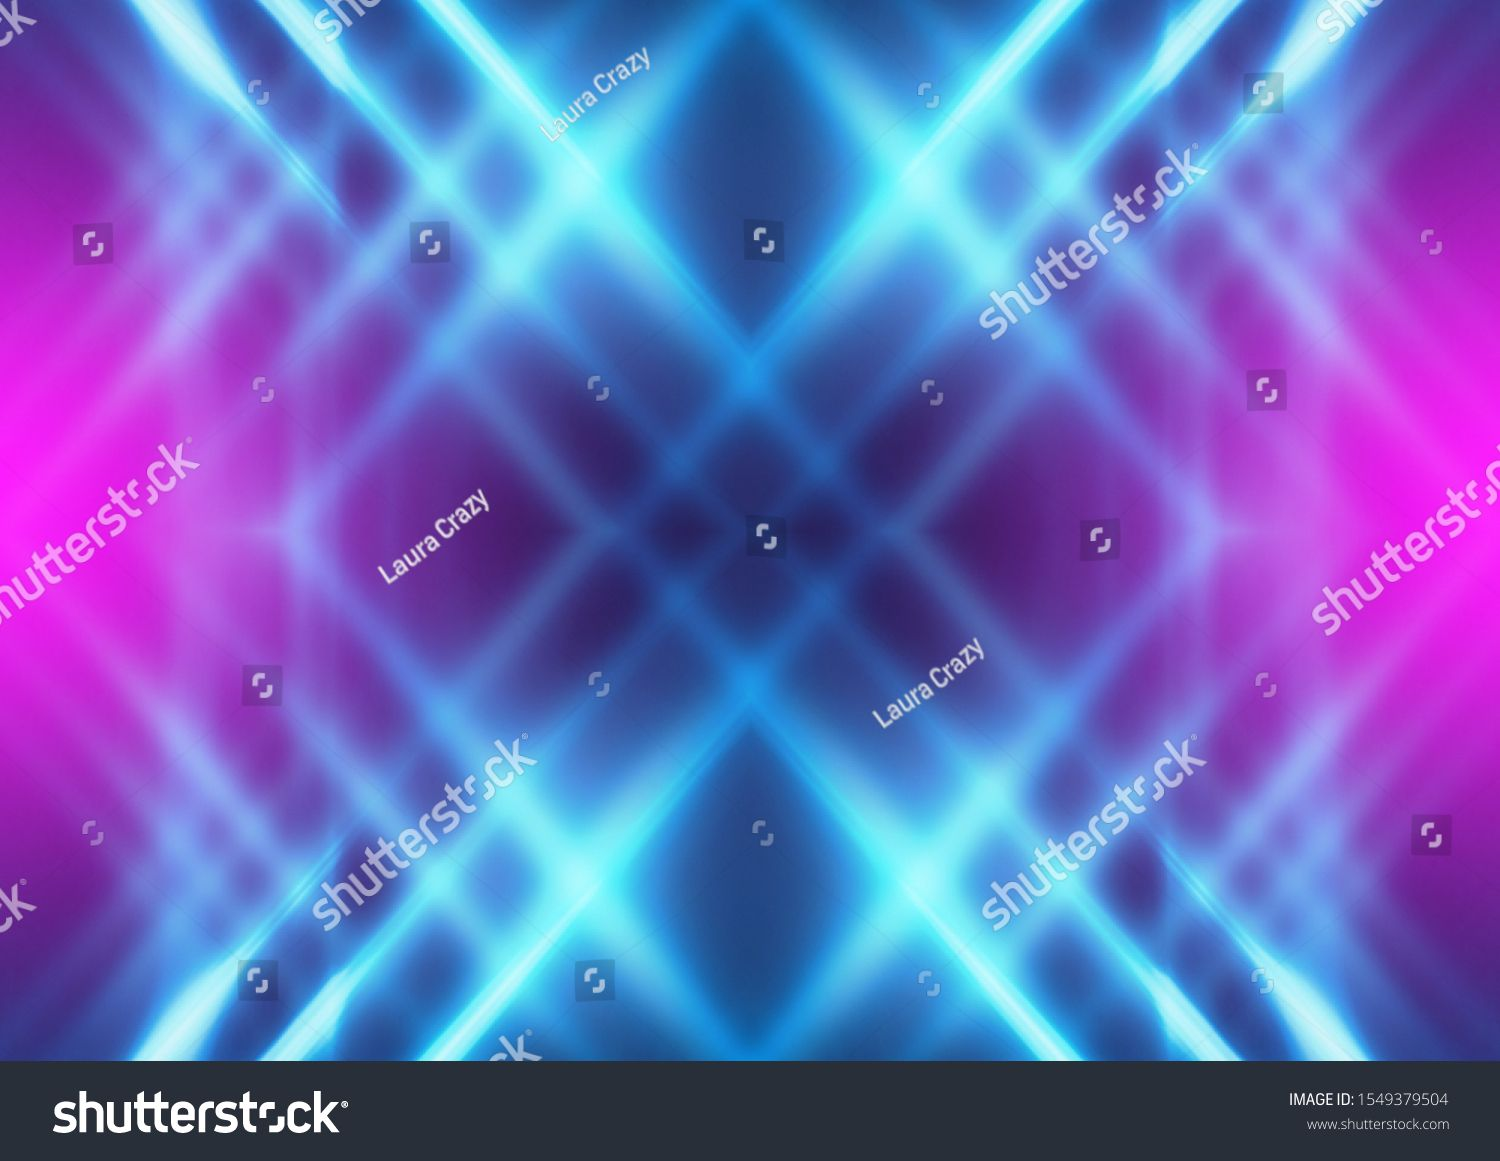 Dark abstract futuristic background. Neon lines glow. Neon lines, shapes. Multi-colored glow, blurry lights, bokeh. Empt #Ad , #Affiliate, #Neon#lines#glow#background